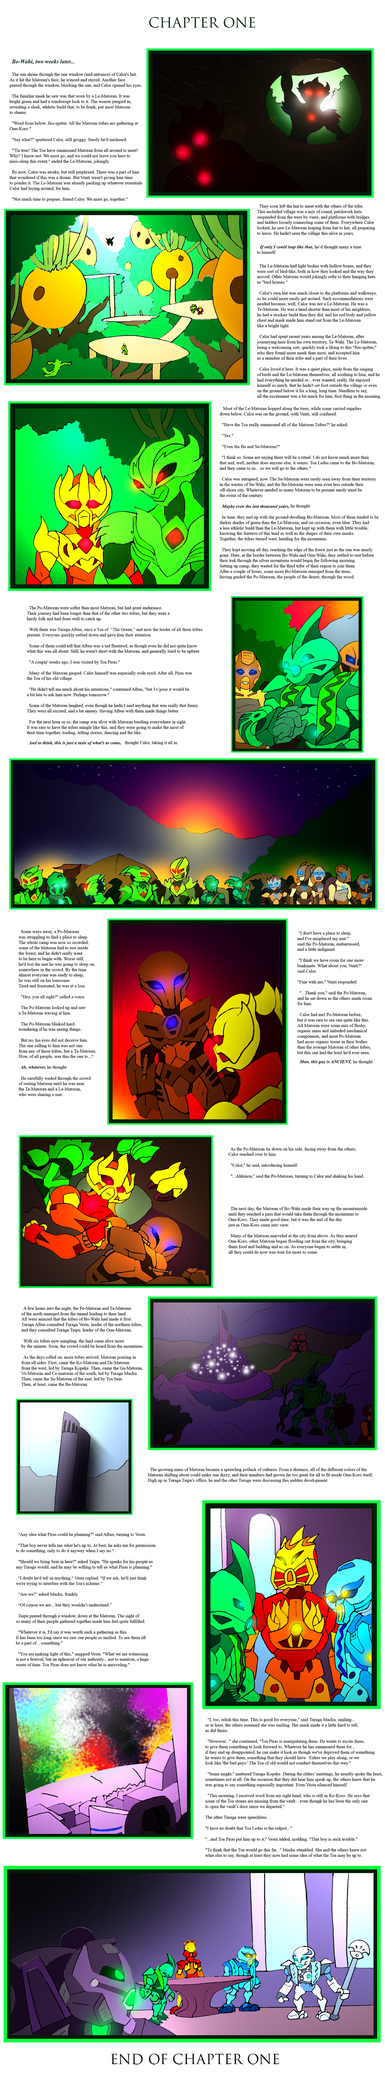 Bionicle- Nova Orbis- Mystery- Chapter 1 by NickinAmerica